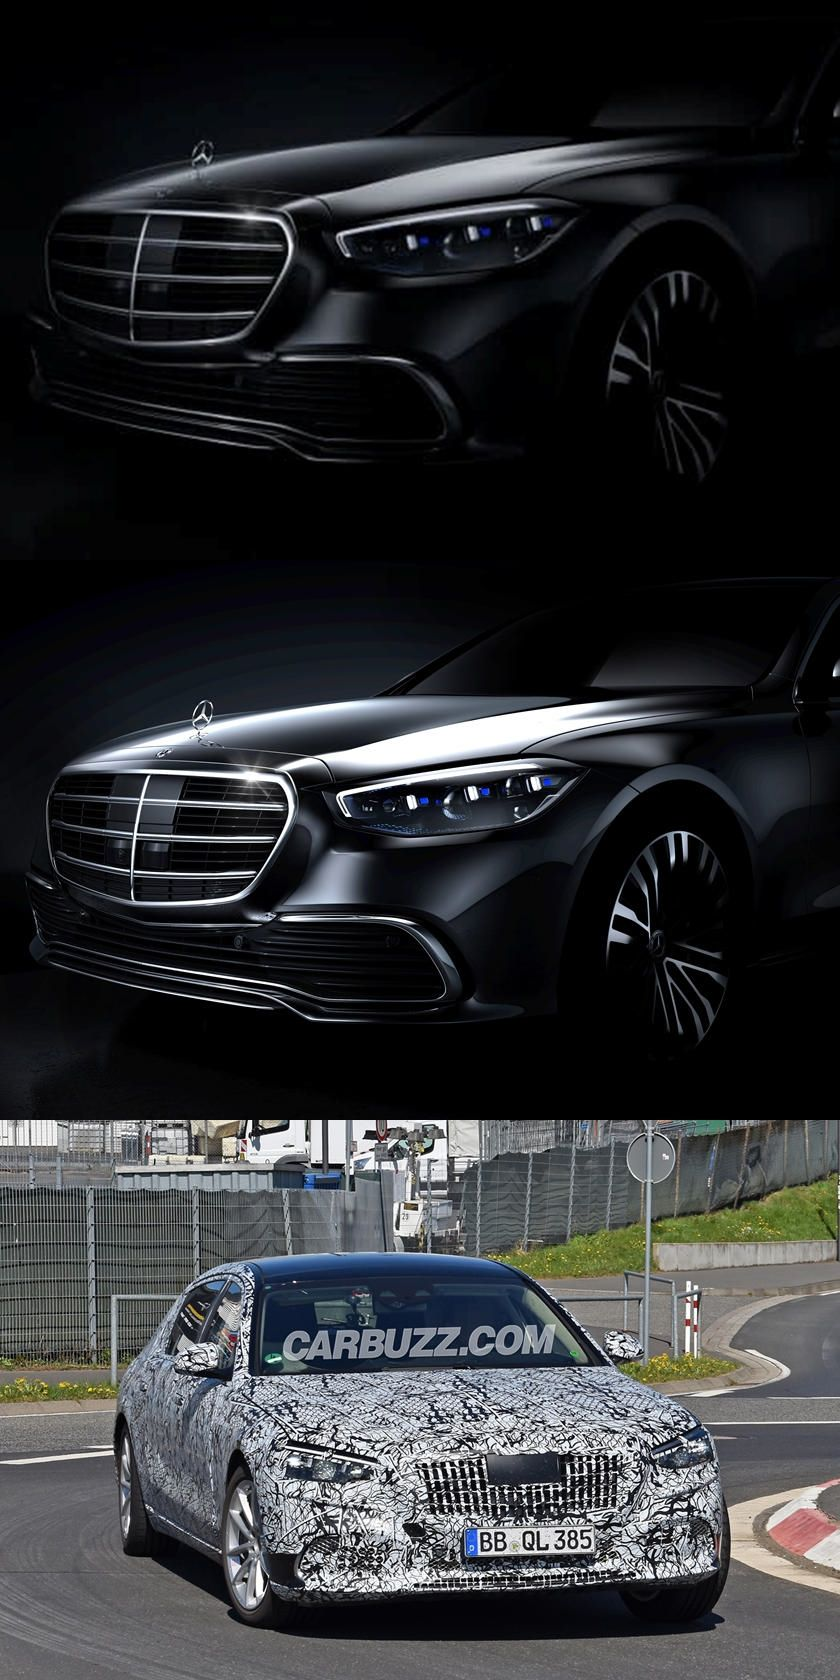 Teased First Look At All New 2021 Mercedes Benz S Class First Official Image Of The All New S Class Revealed Benz S Benz S Class Mercedes Benz